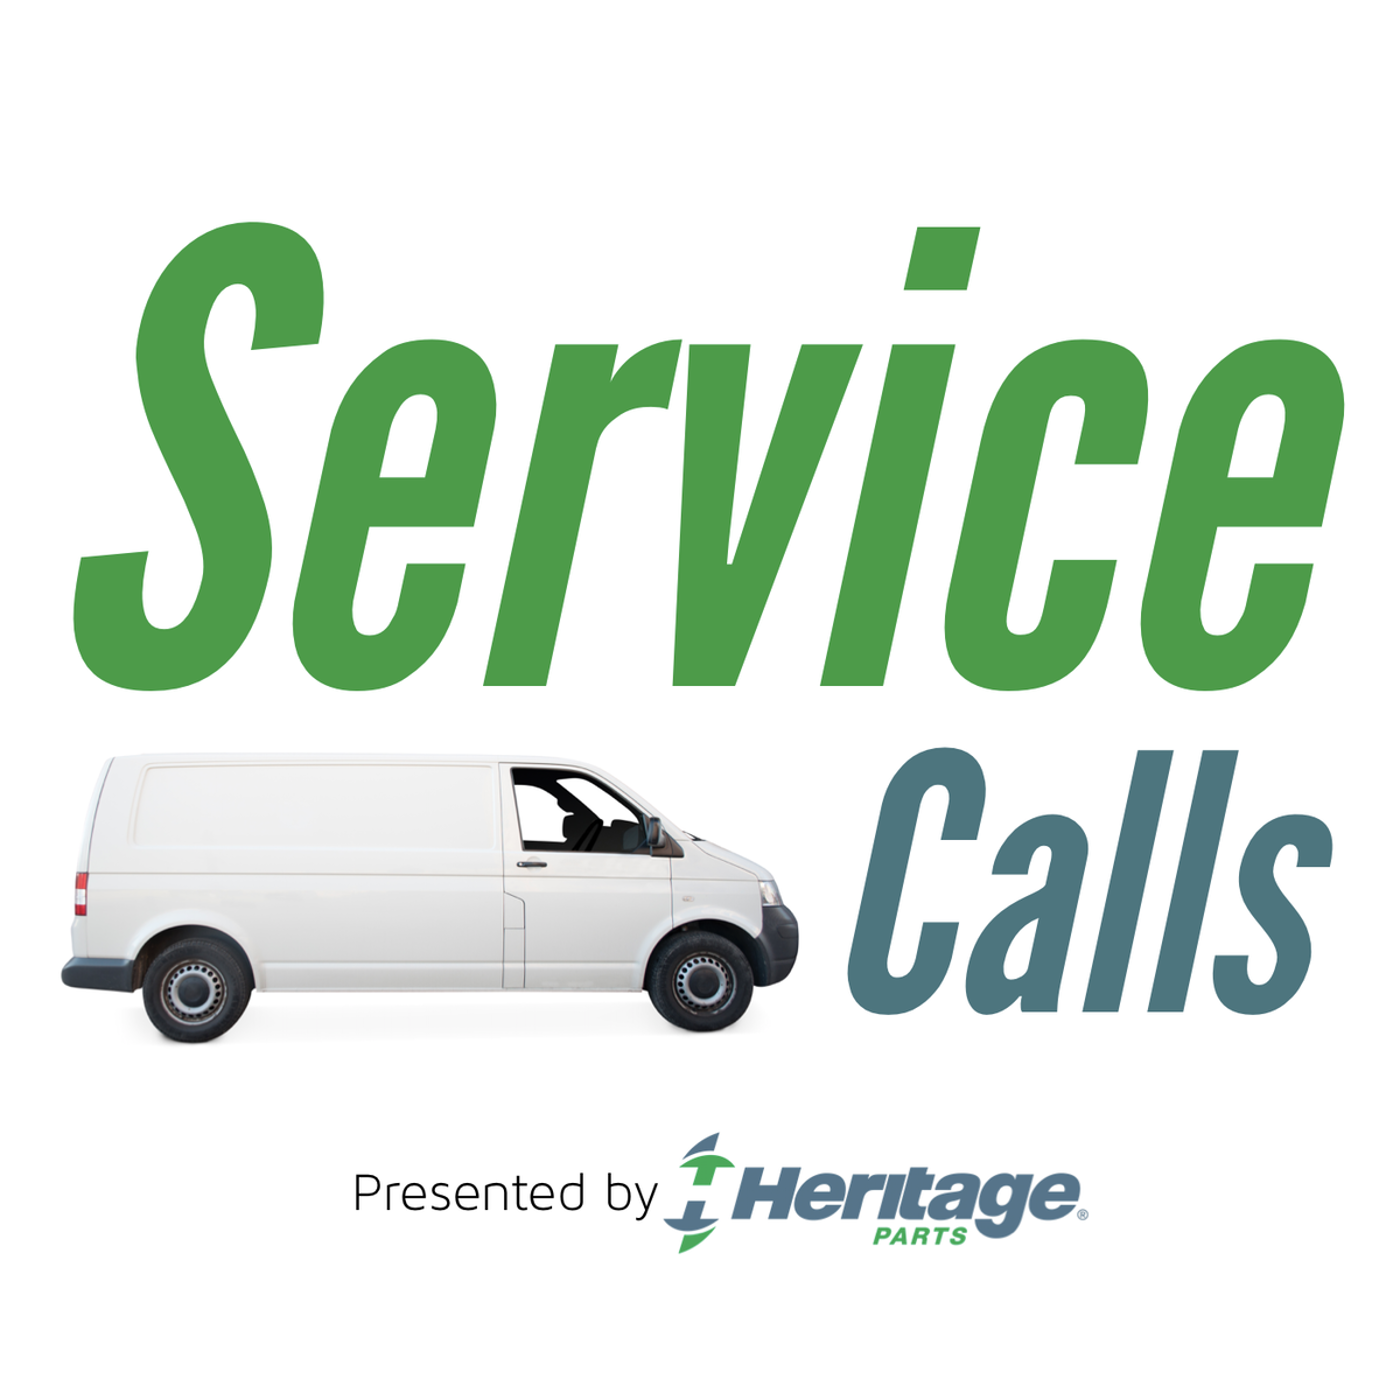 Service Calls is a podcast for food equipment service technicians—the techs on the truck—brought to you by Heritage Parts in partnership with Foodservice Equipment Reports. Listen as you drive between service calls to hear timely need-to-know updates about foodservice equipment, practical tips to help jobs go smoothly, real-life tales from techs in the field and more. Are you a foodservice equipment tech with a story to share? Submit a written account or voice recording to servicecalls@fermag.com, and we may feature you on a future episode.